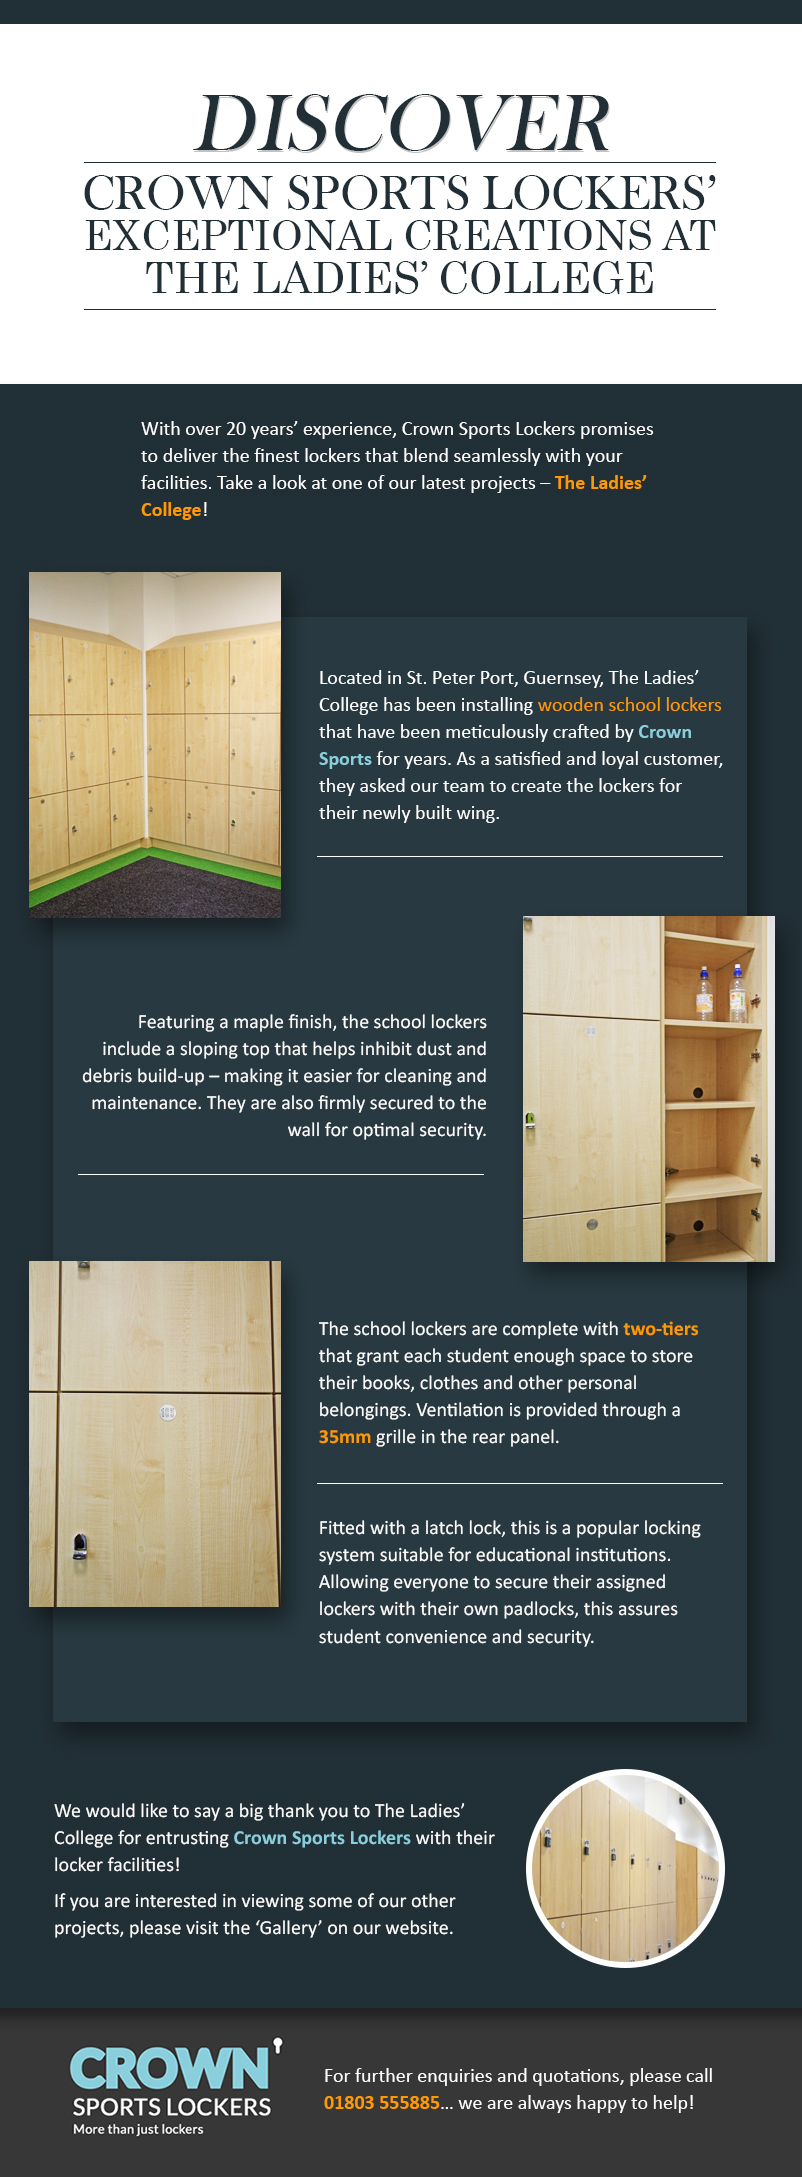 discover-crown-sports-lockers'-exceptional-creations